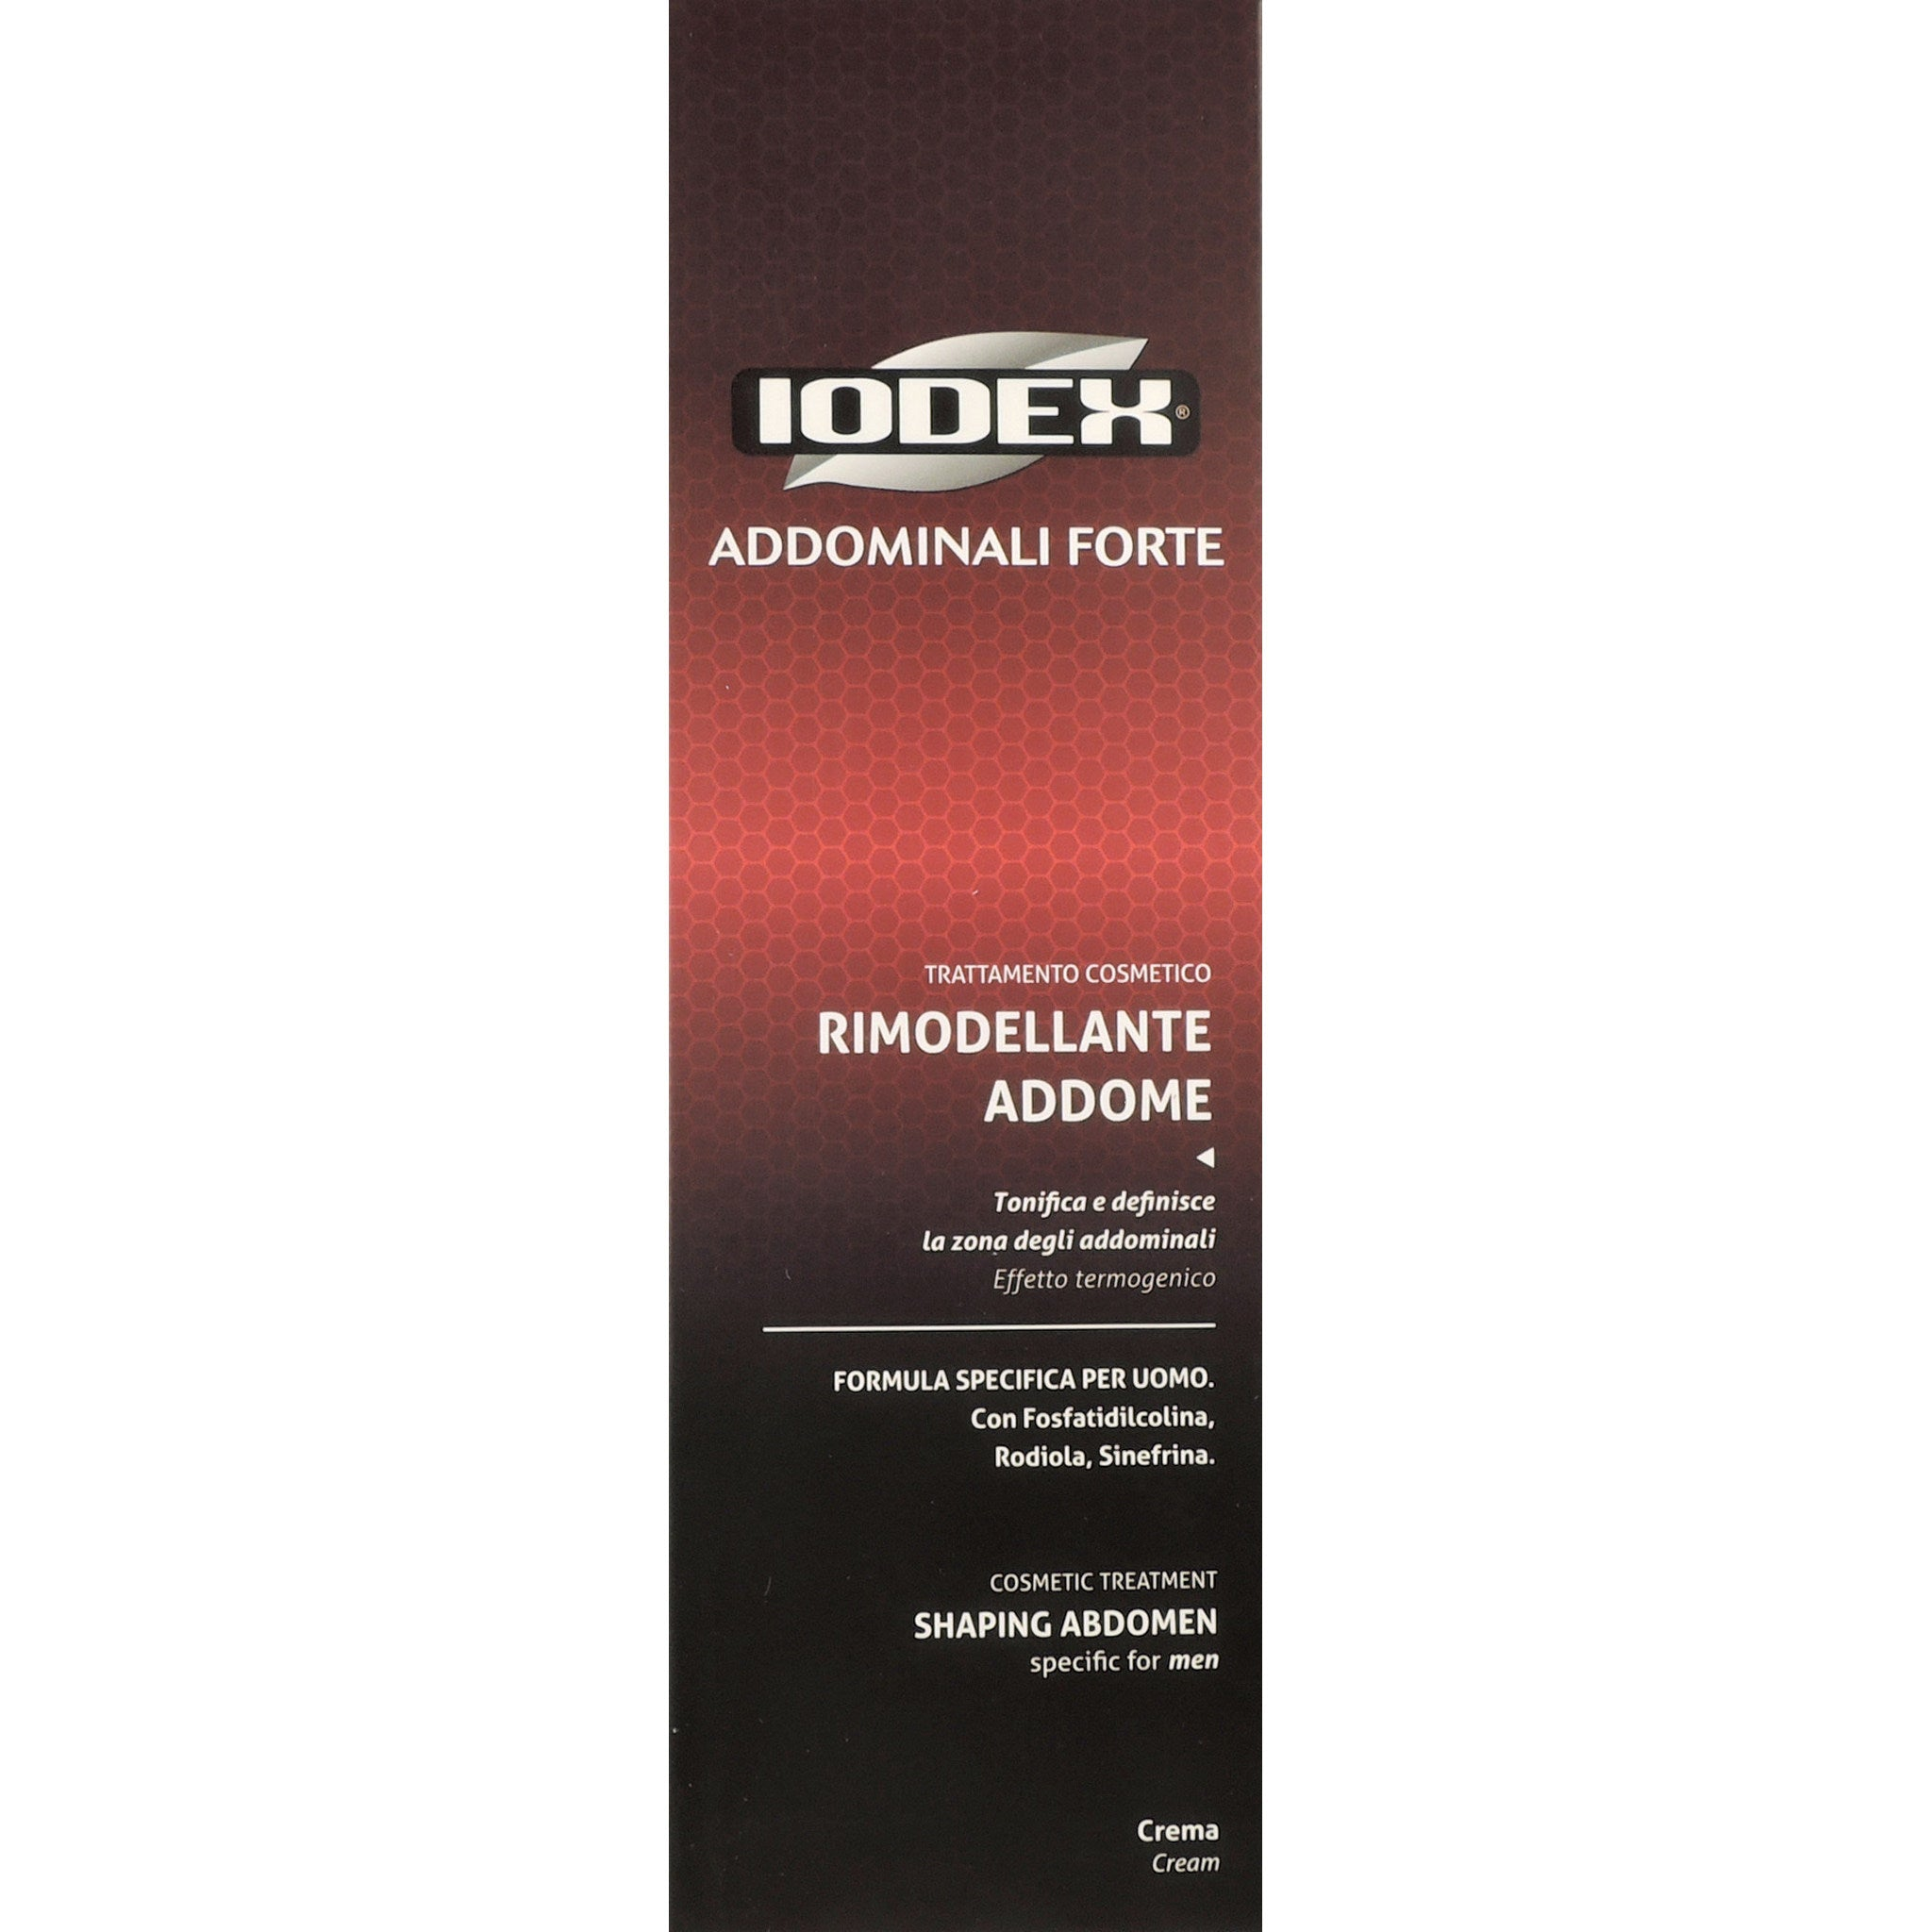 IODEX ADDOMINALI FORTE 220ML